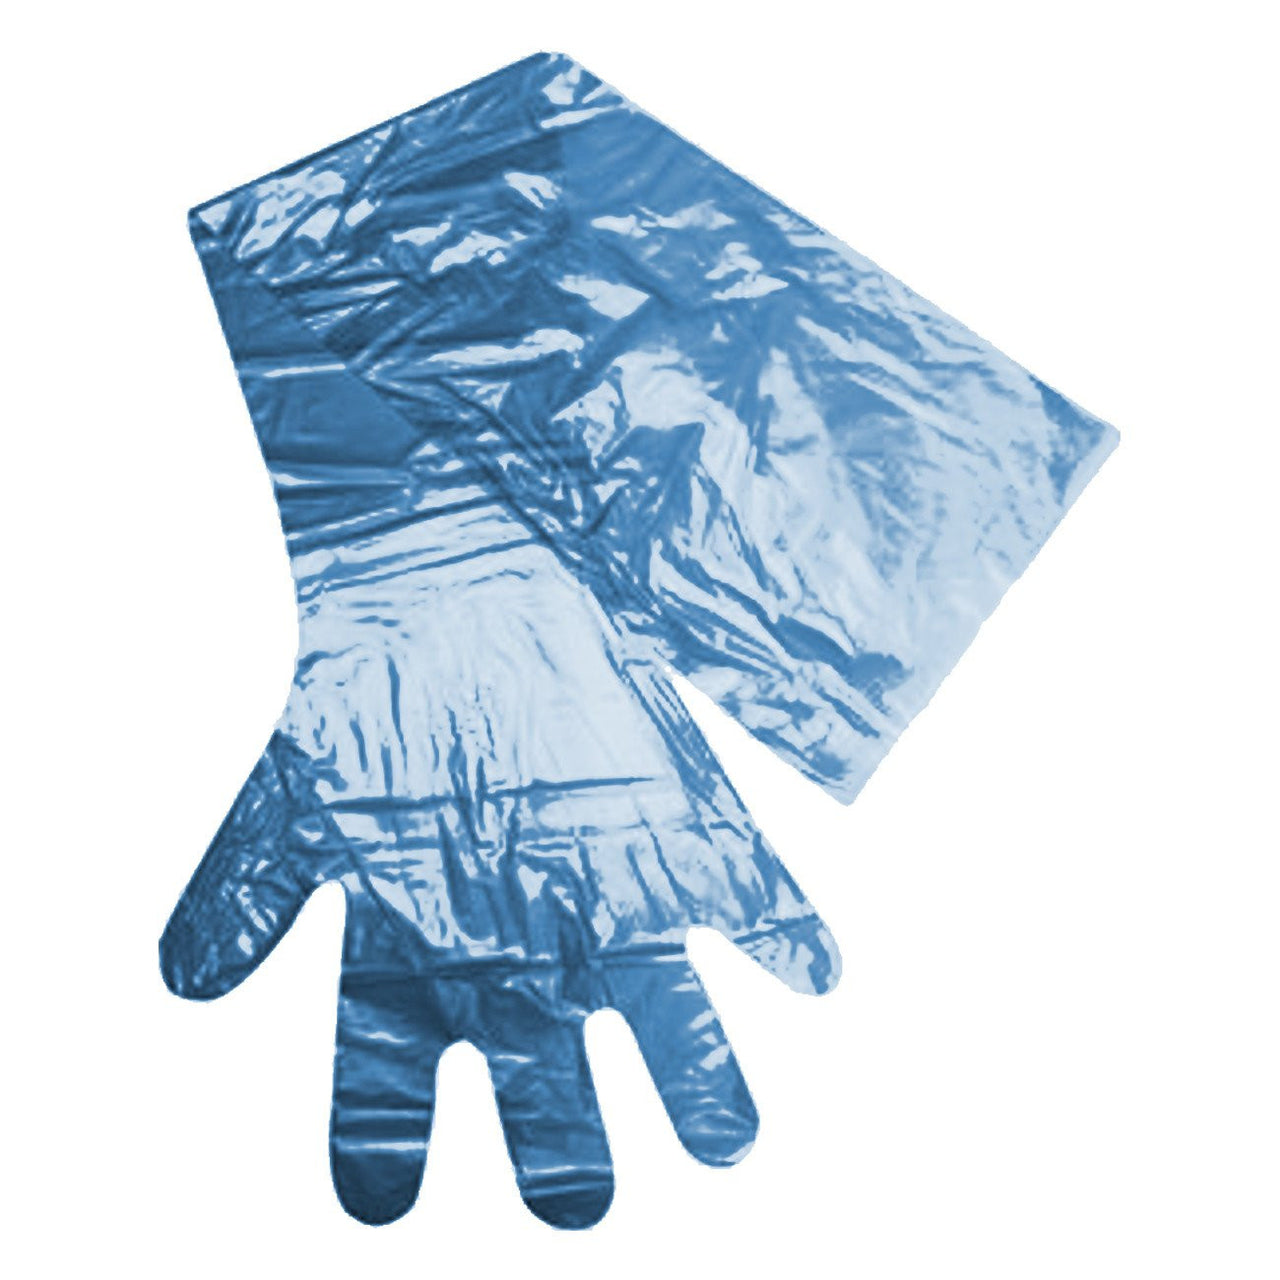 "APE ob/ai glove 35"" long by 32µm thick blue 100/pk - Remedy Animal Health Products Ltd."